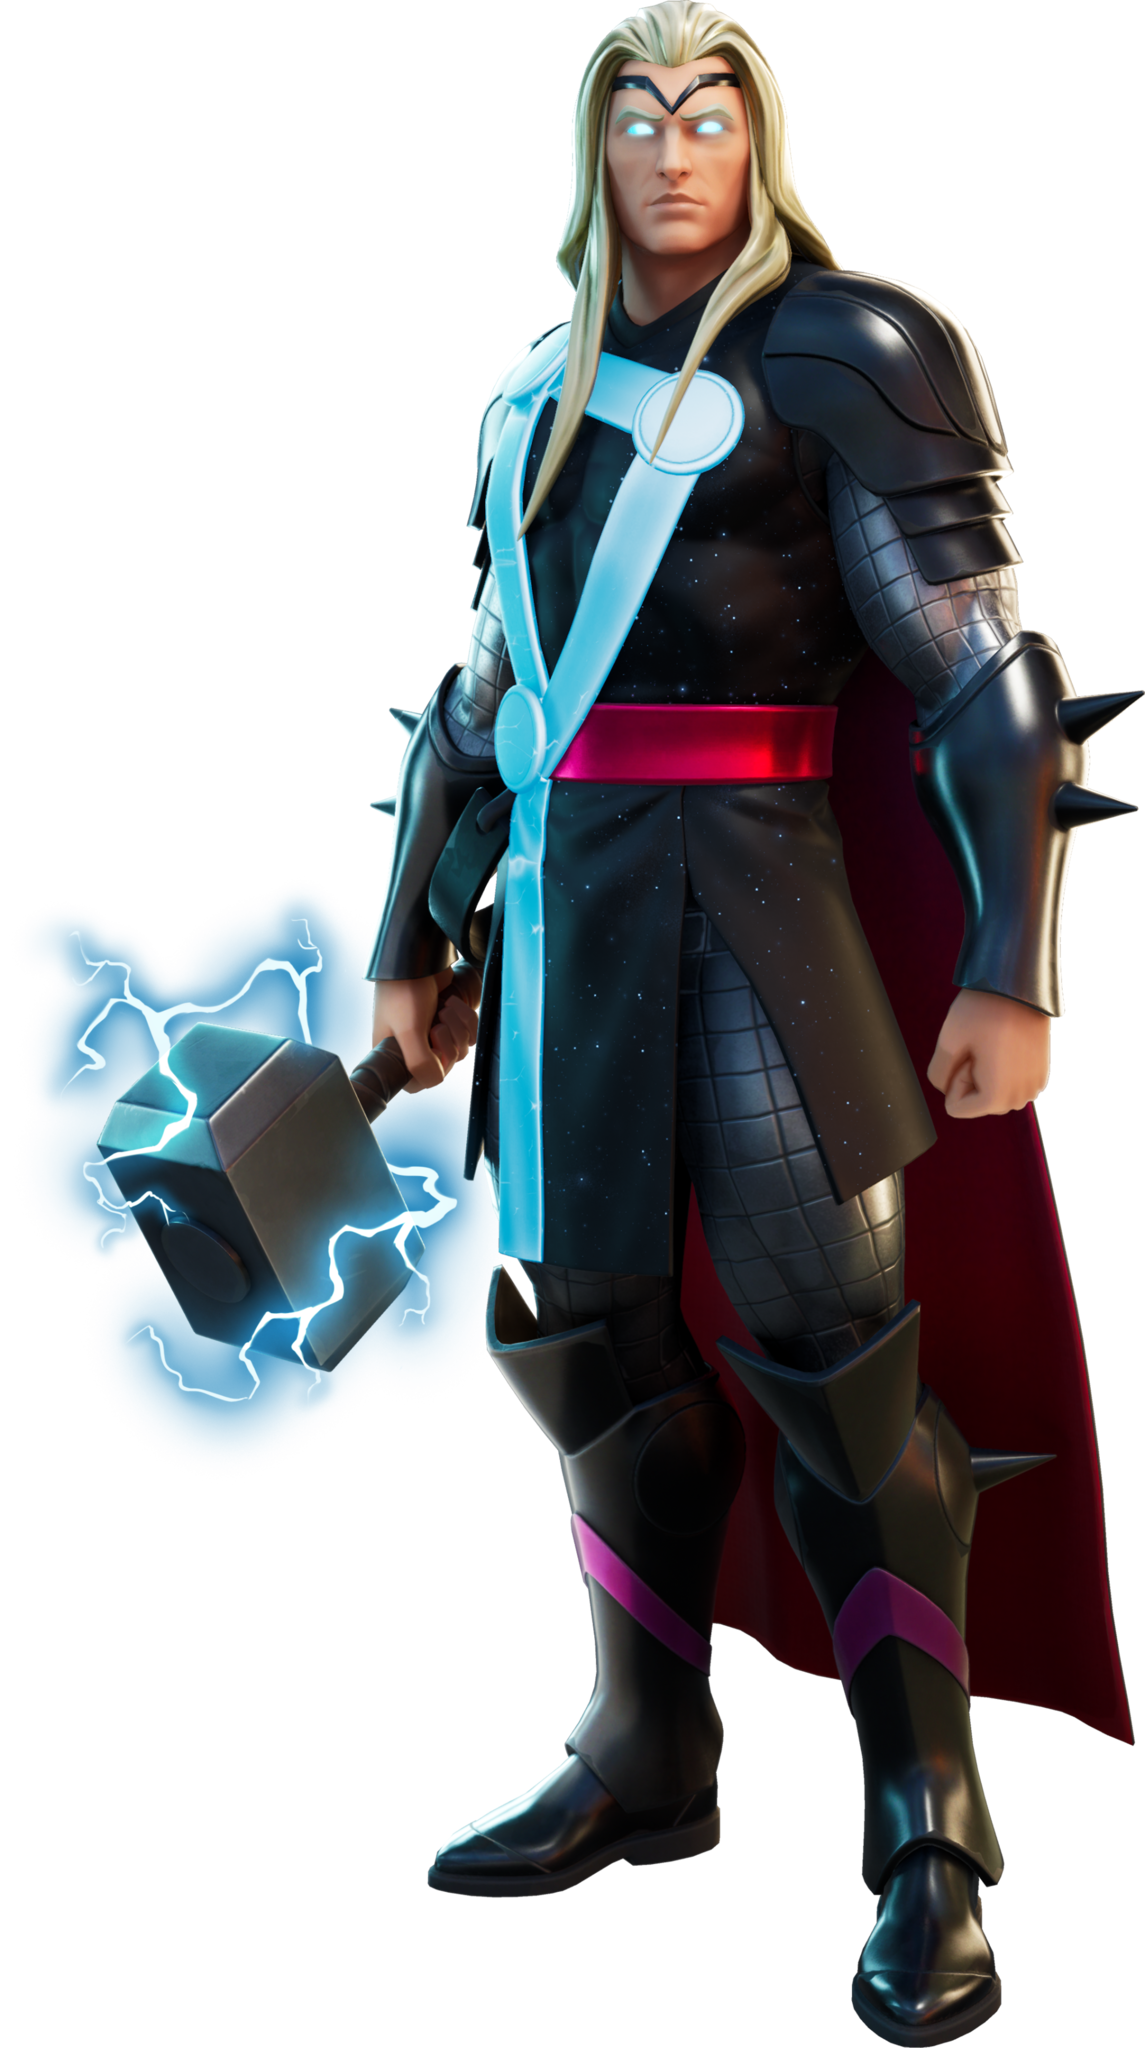 Thor Fortnite Wallpapers Wallpaper Cave